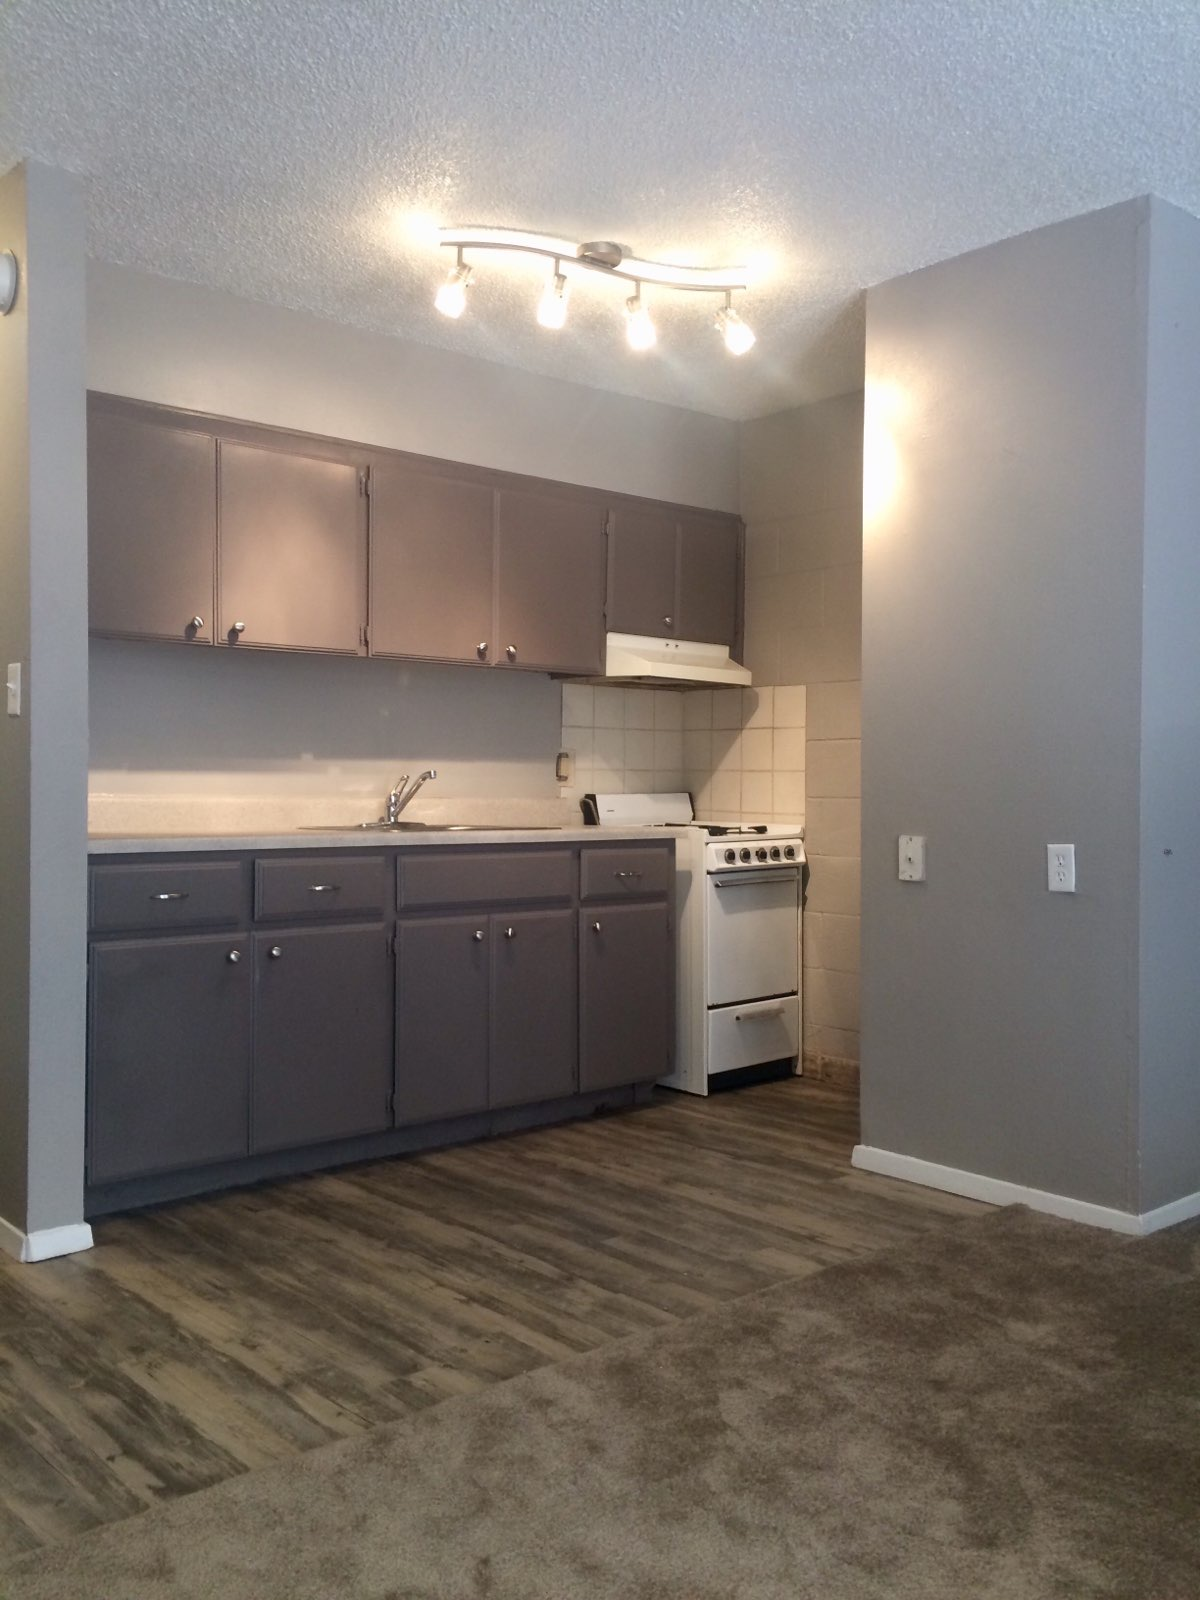 Fully Equipped Kitchen at Casa del Sol Apartments in Amarillo, TX